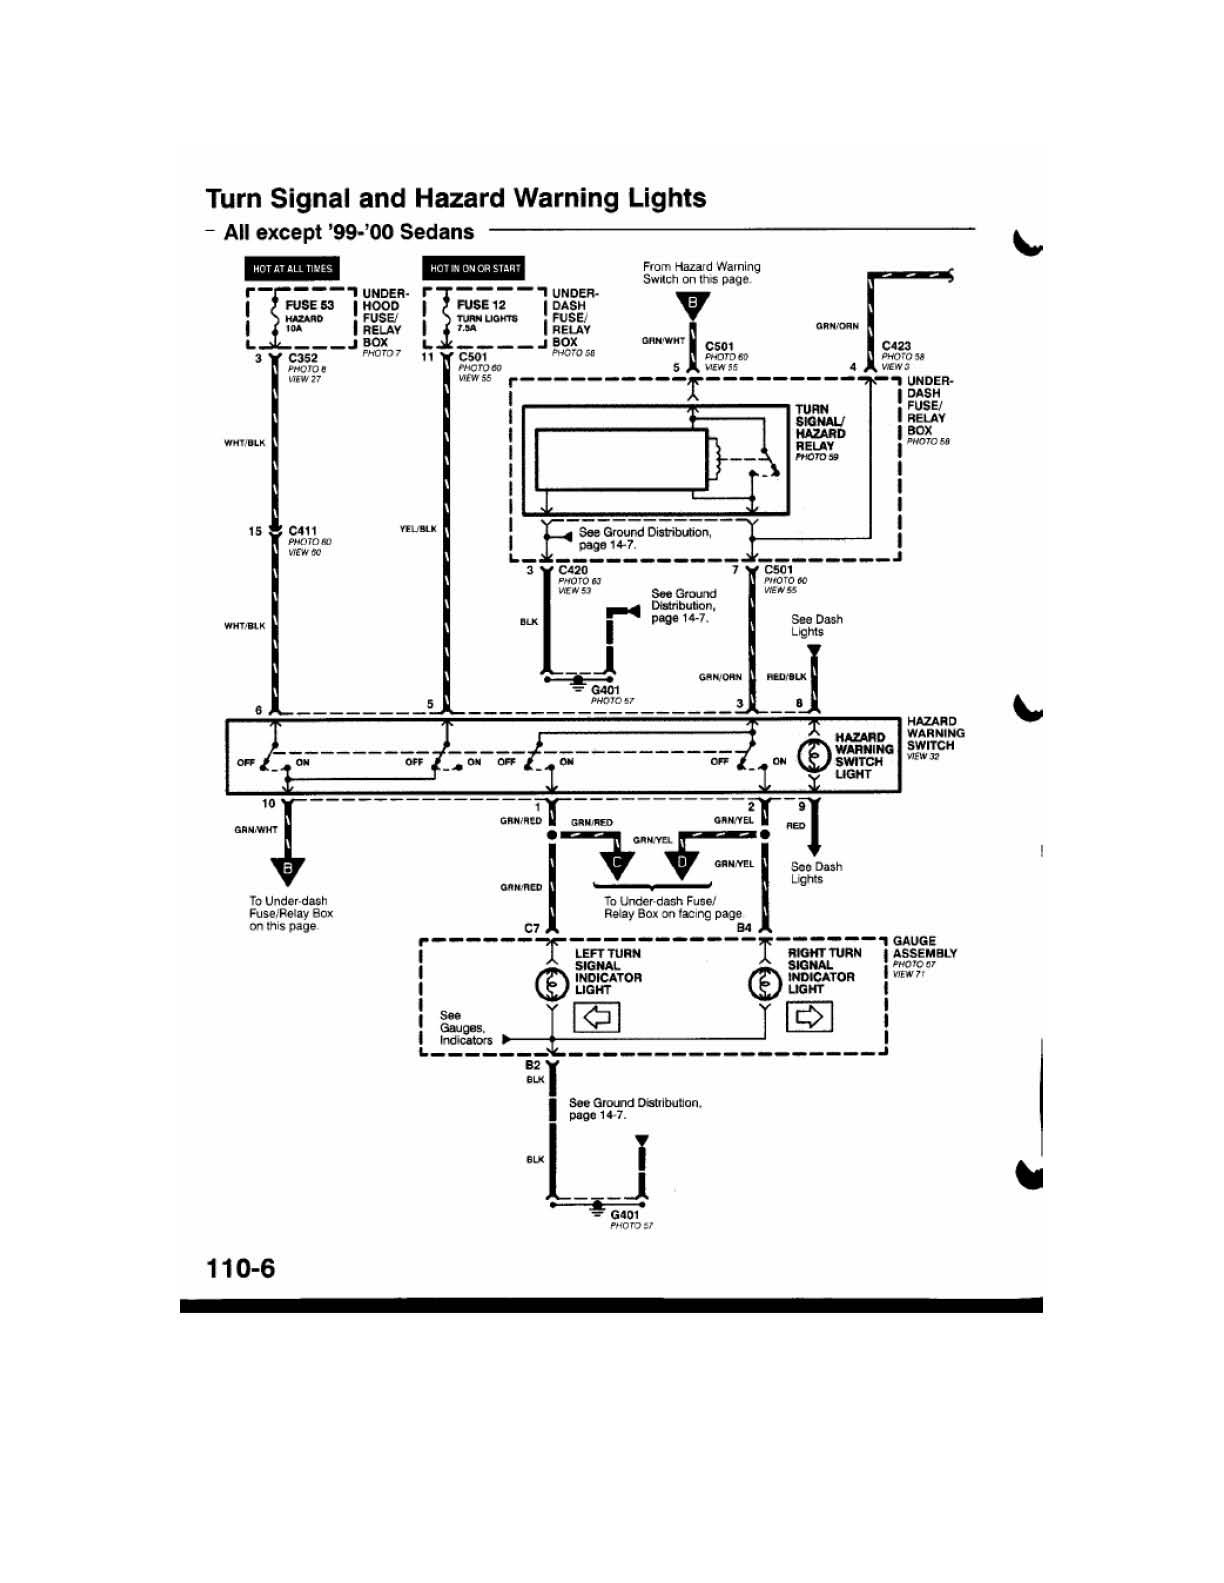 wiring 110 series wiring diagram centreturn signal wiring diagram needed d series org within 99 civicturn [ 1224 x 1583 Pixel ]